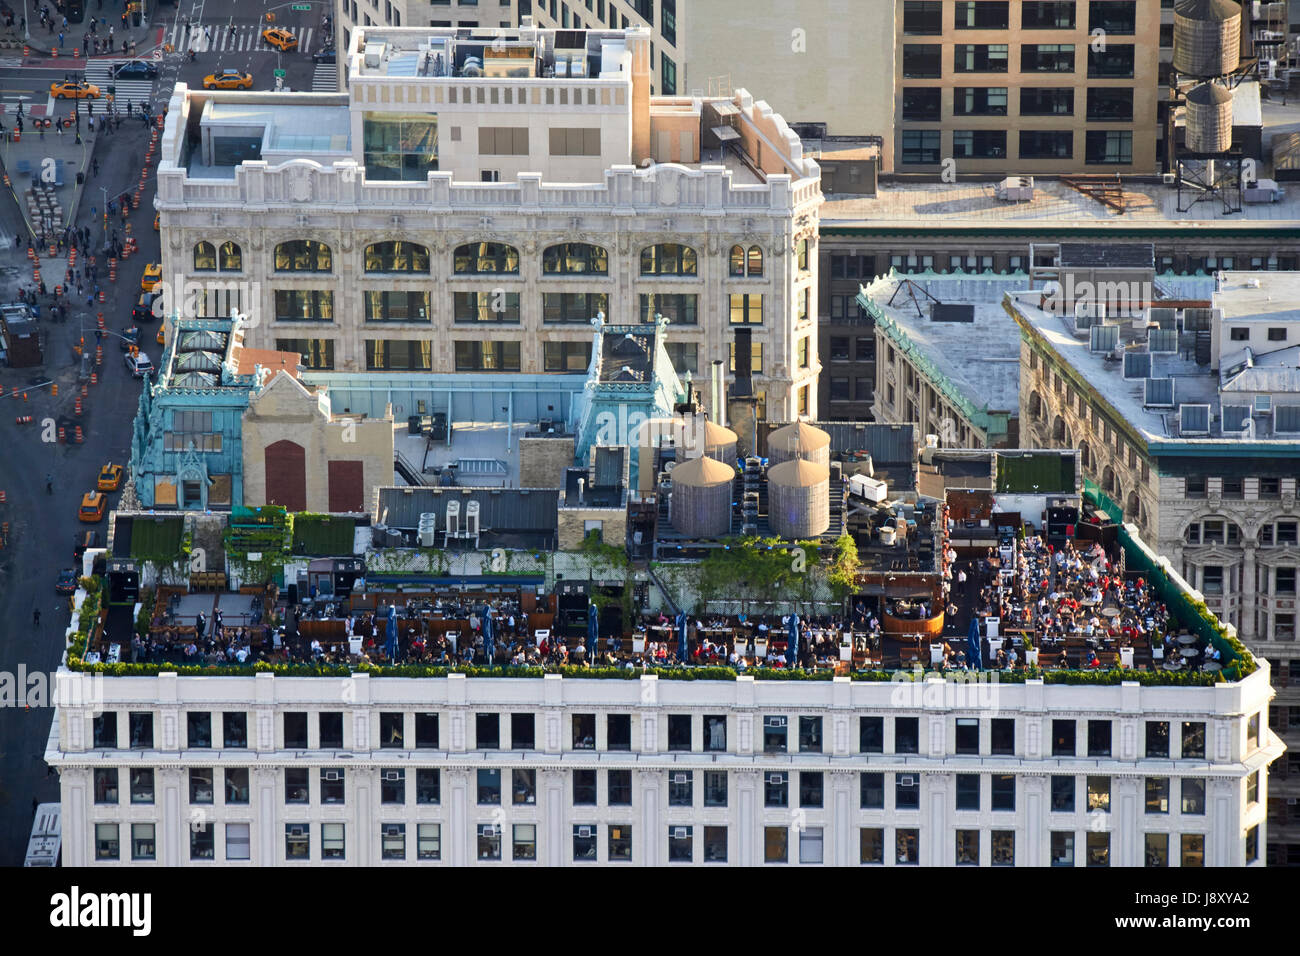 230 fifth rooftop bar on top of the victoria building downtown manhattan New York City USA - Stock Image